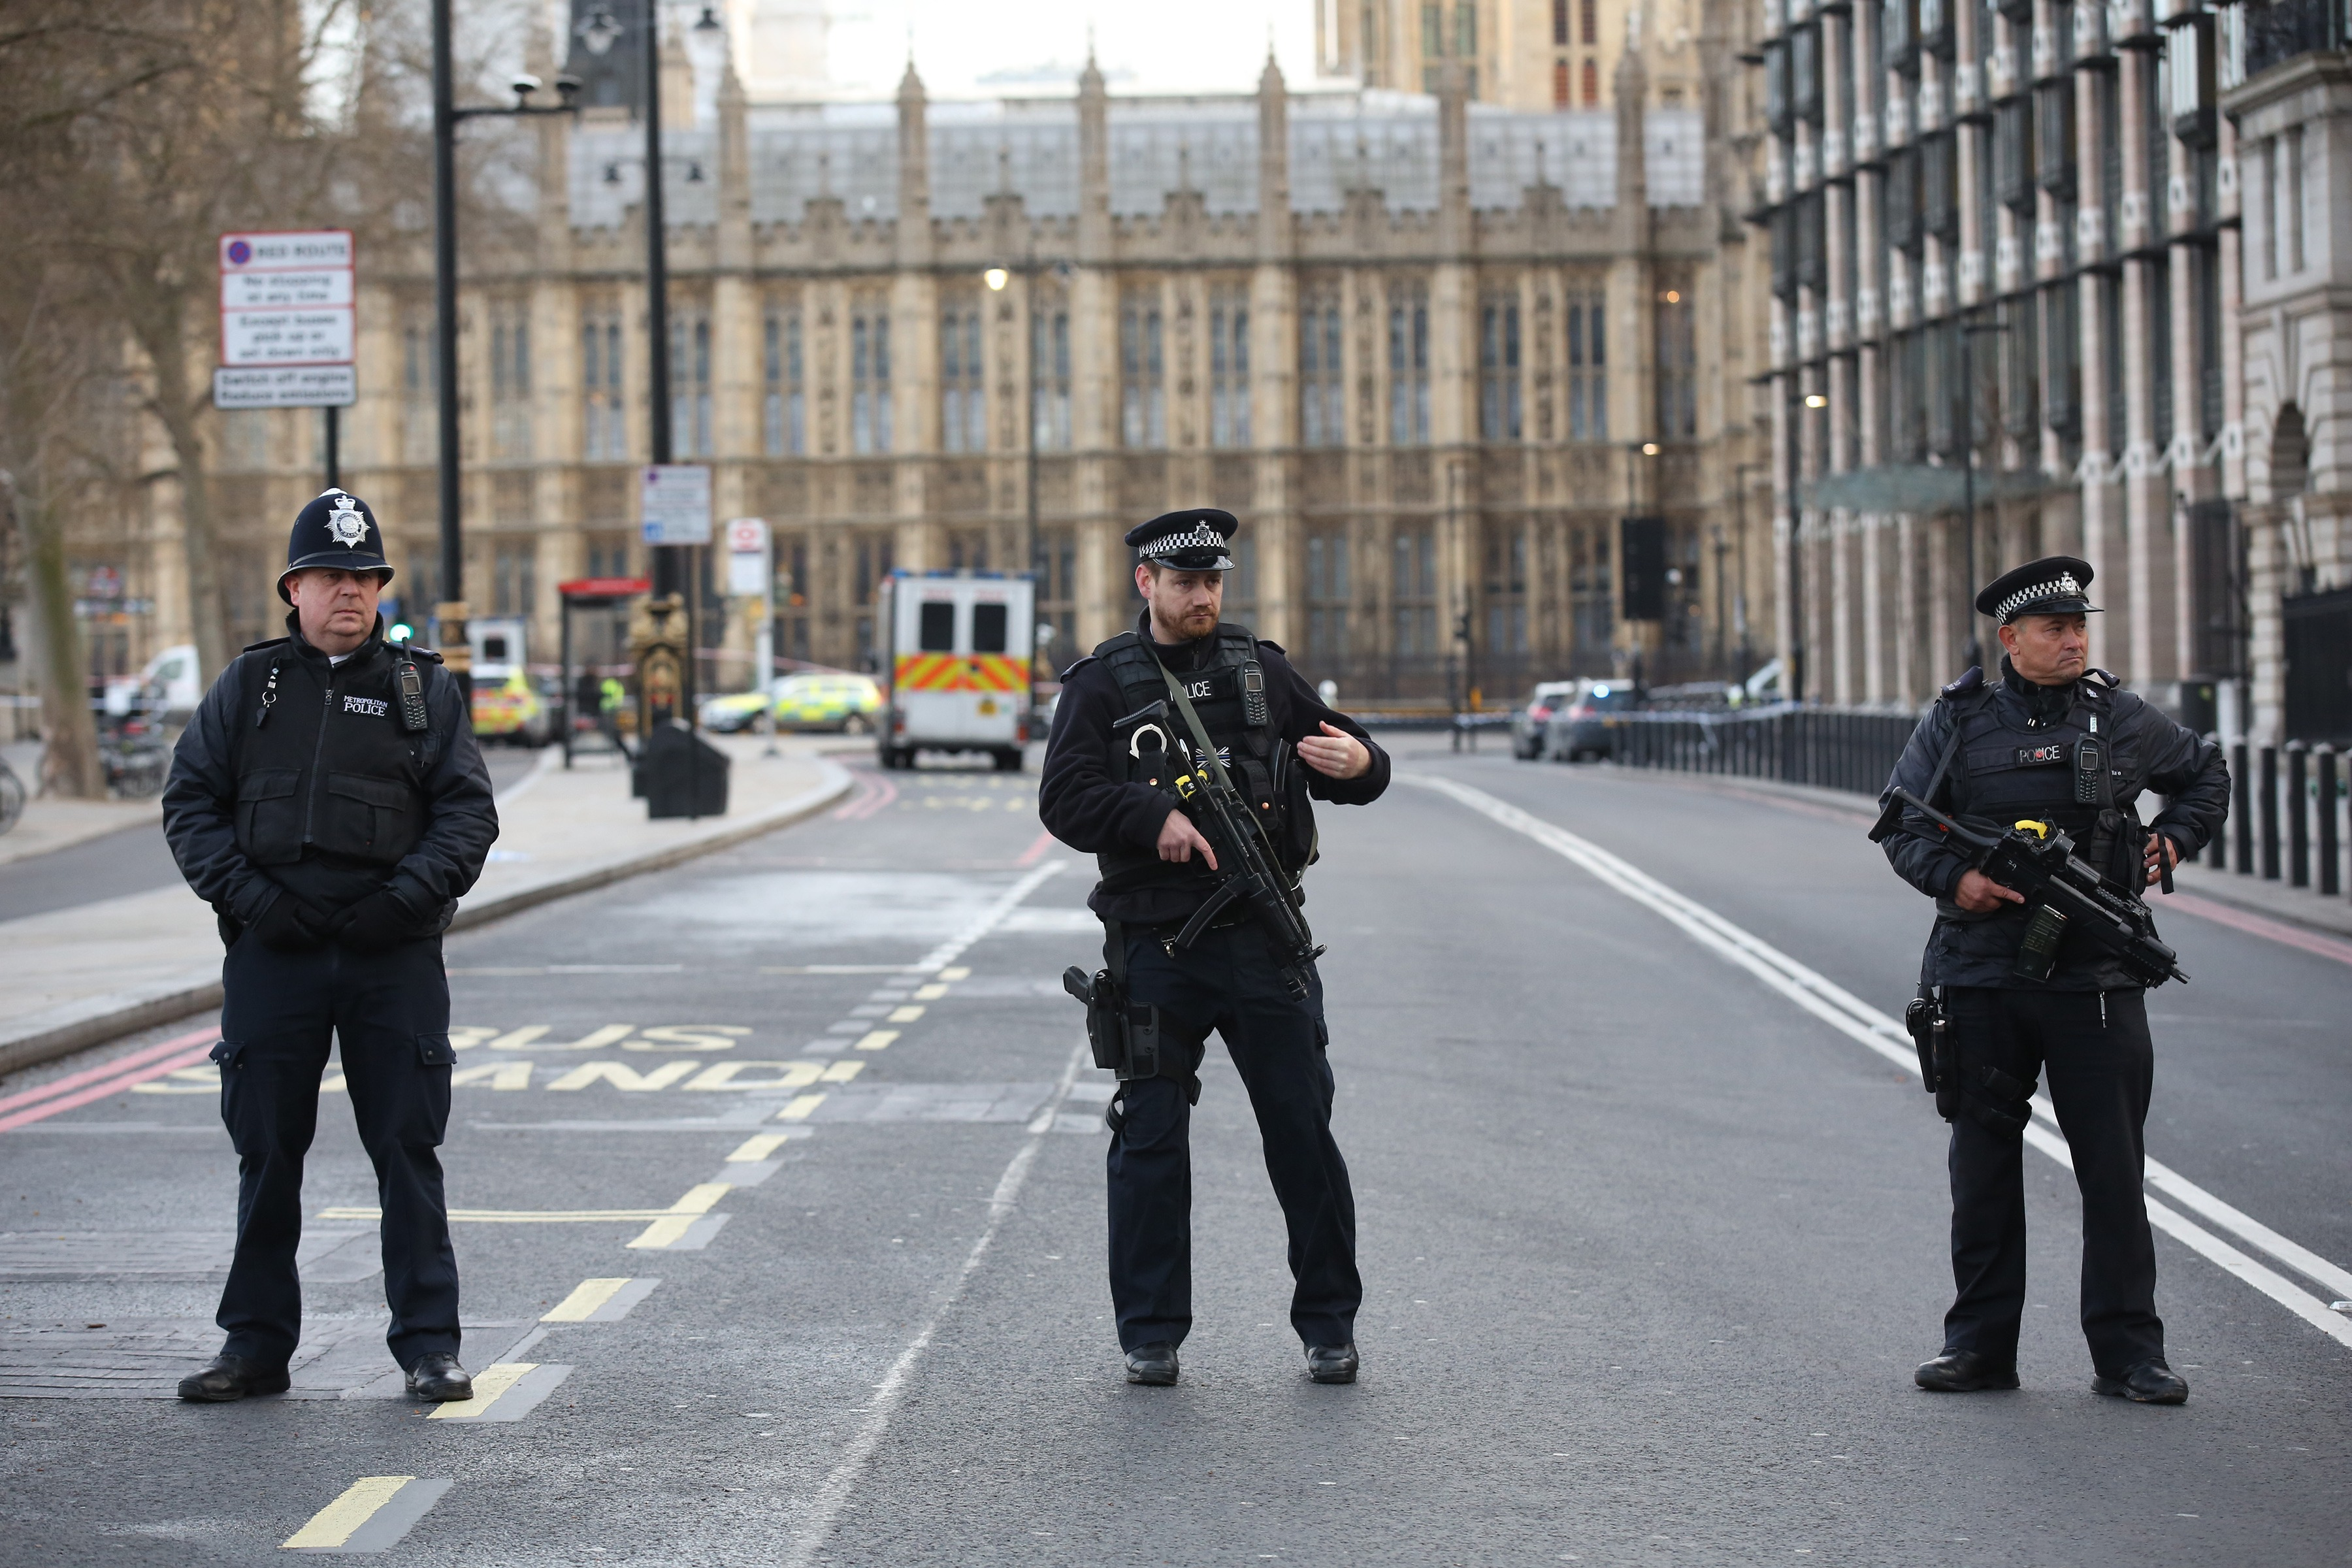 Suspected Terror Incident At the Houses of Parliament